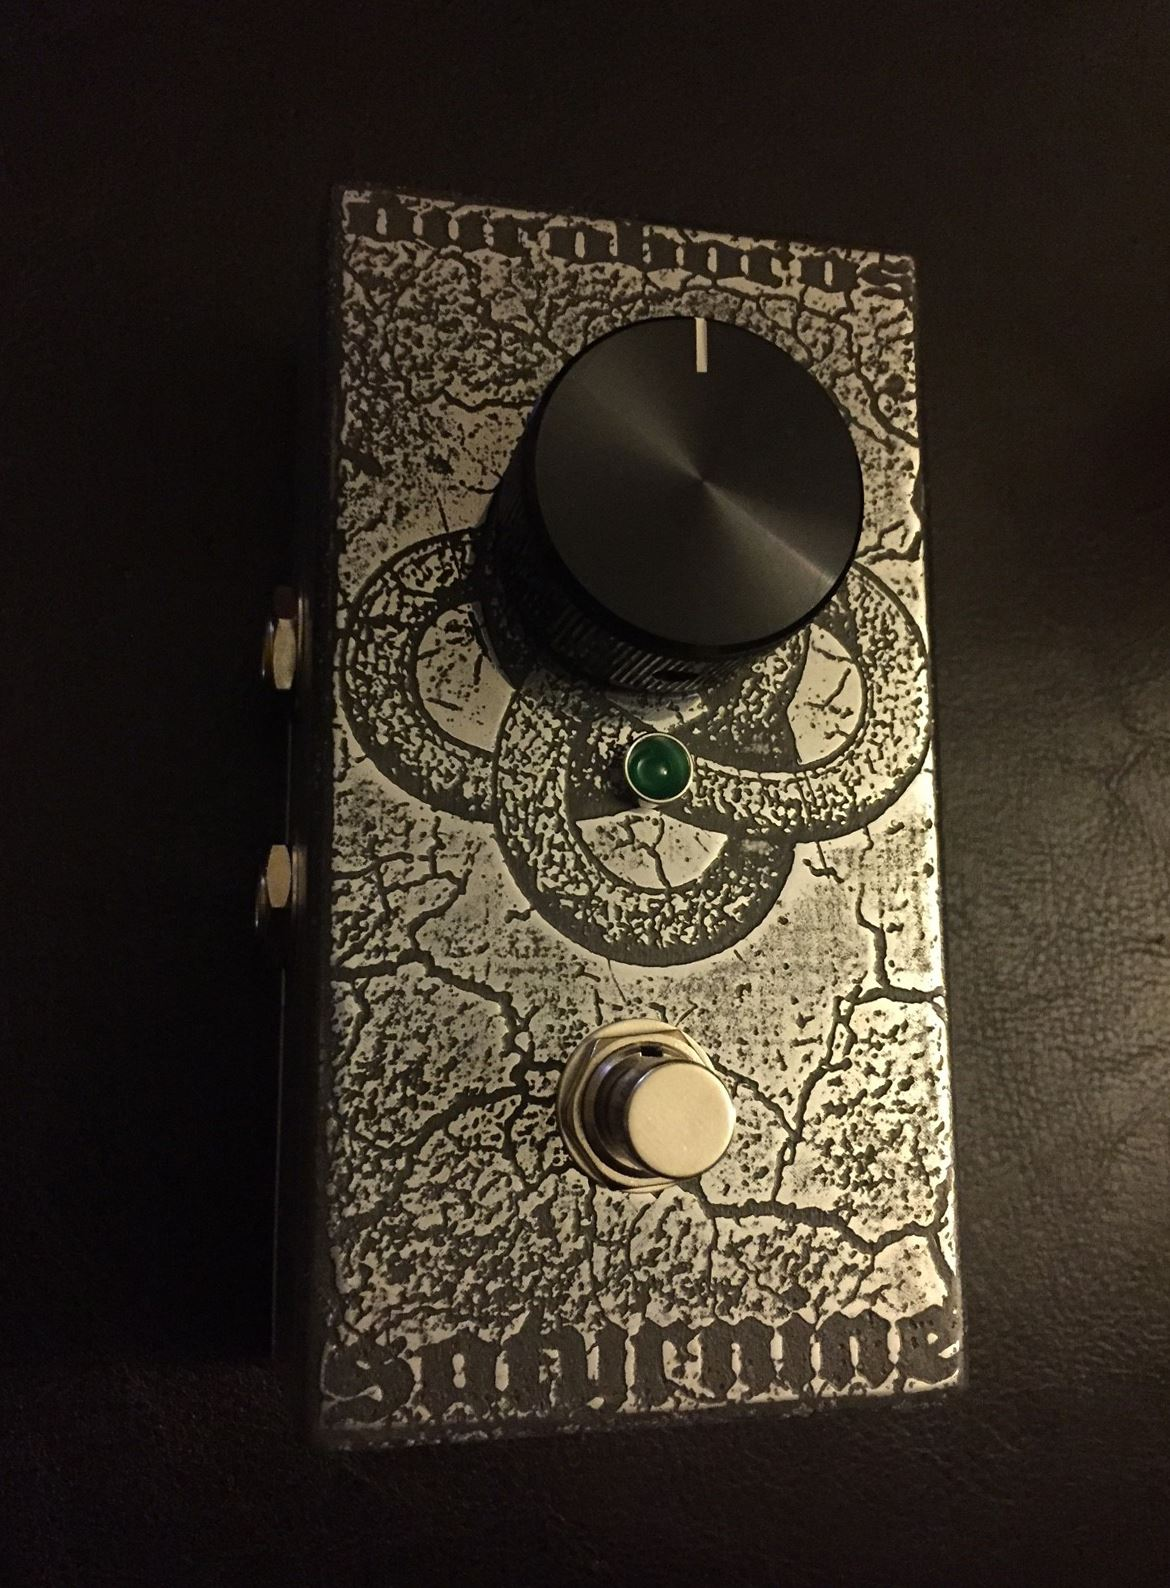 Satyrnine Ouroboros jfet wet/dry loop blender. Shout out to my mentor Joe Frantzen for circuit design collaboration.